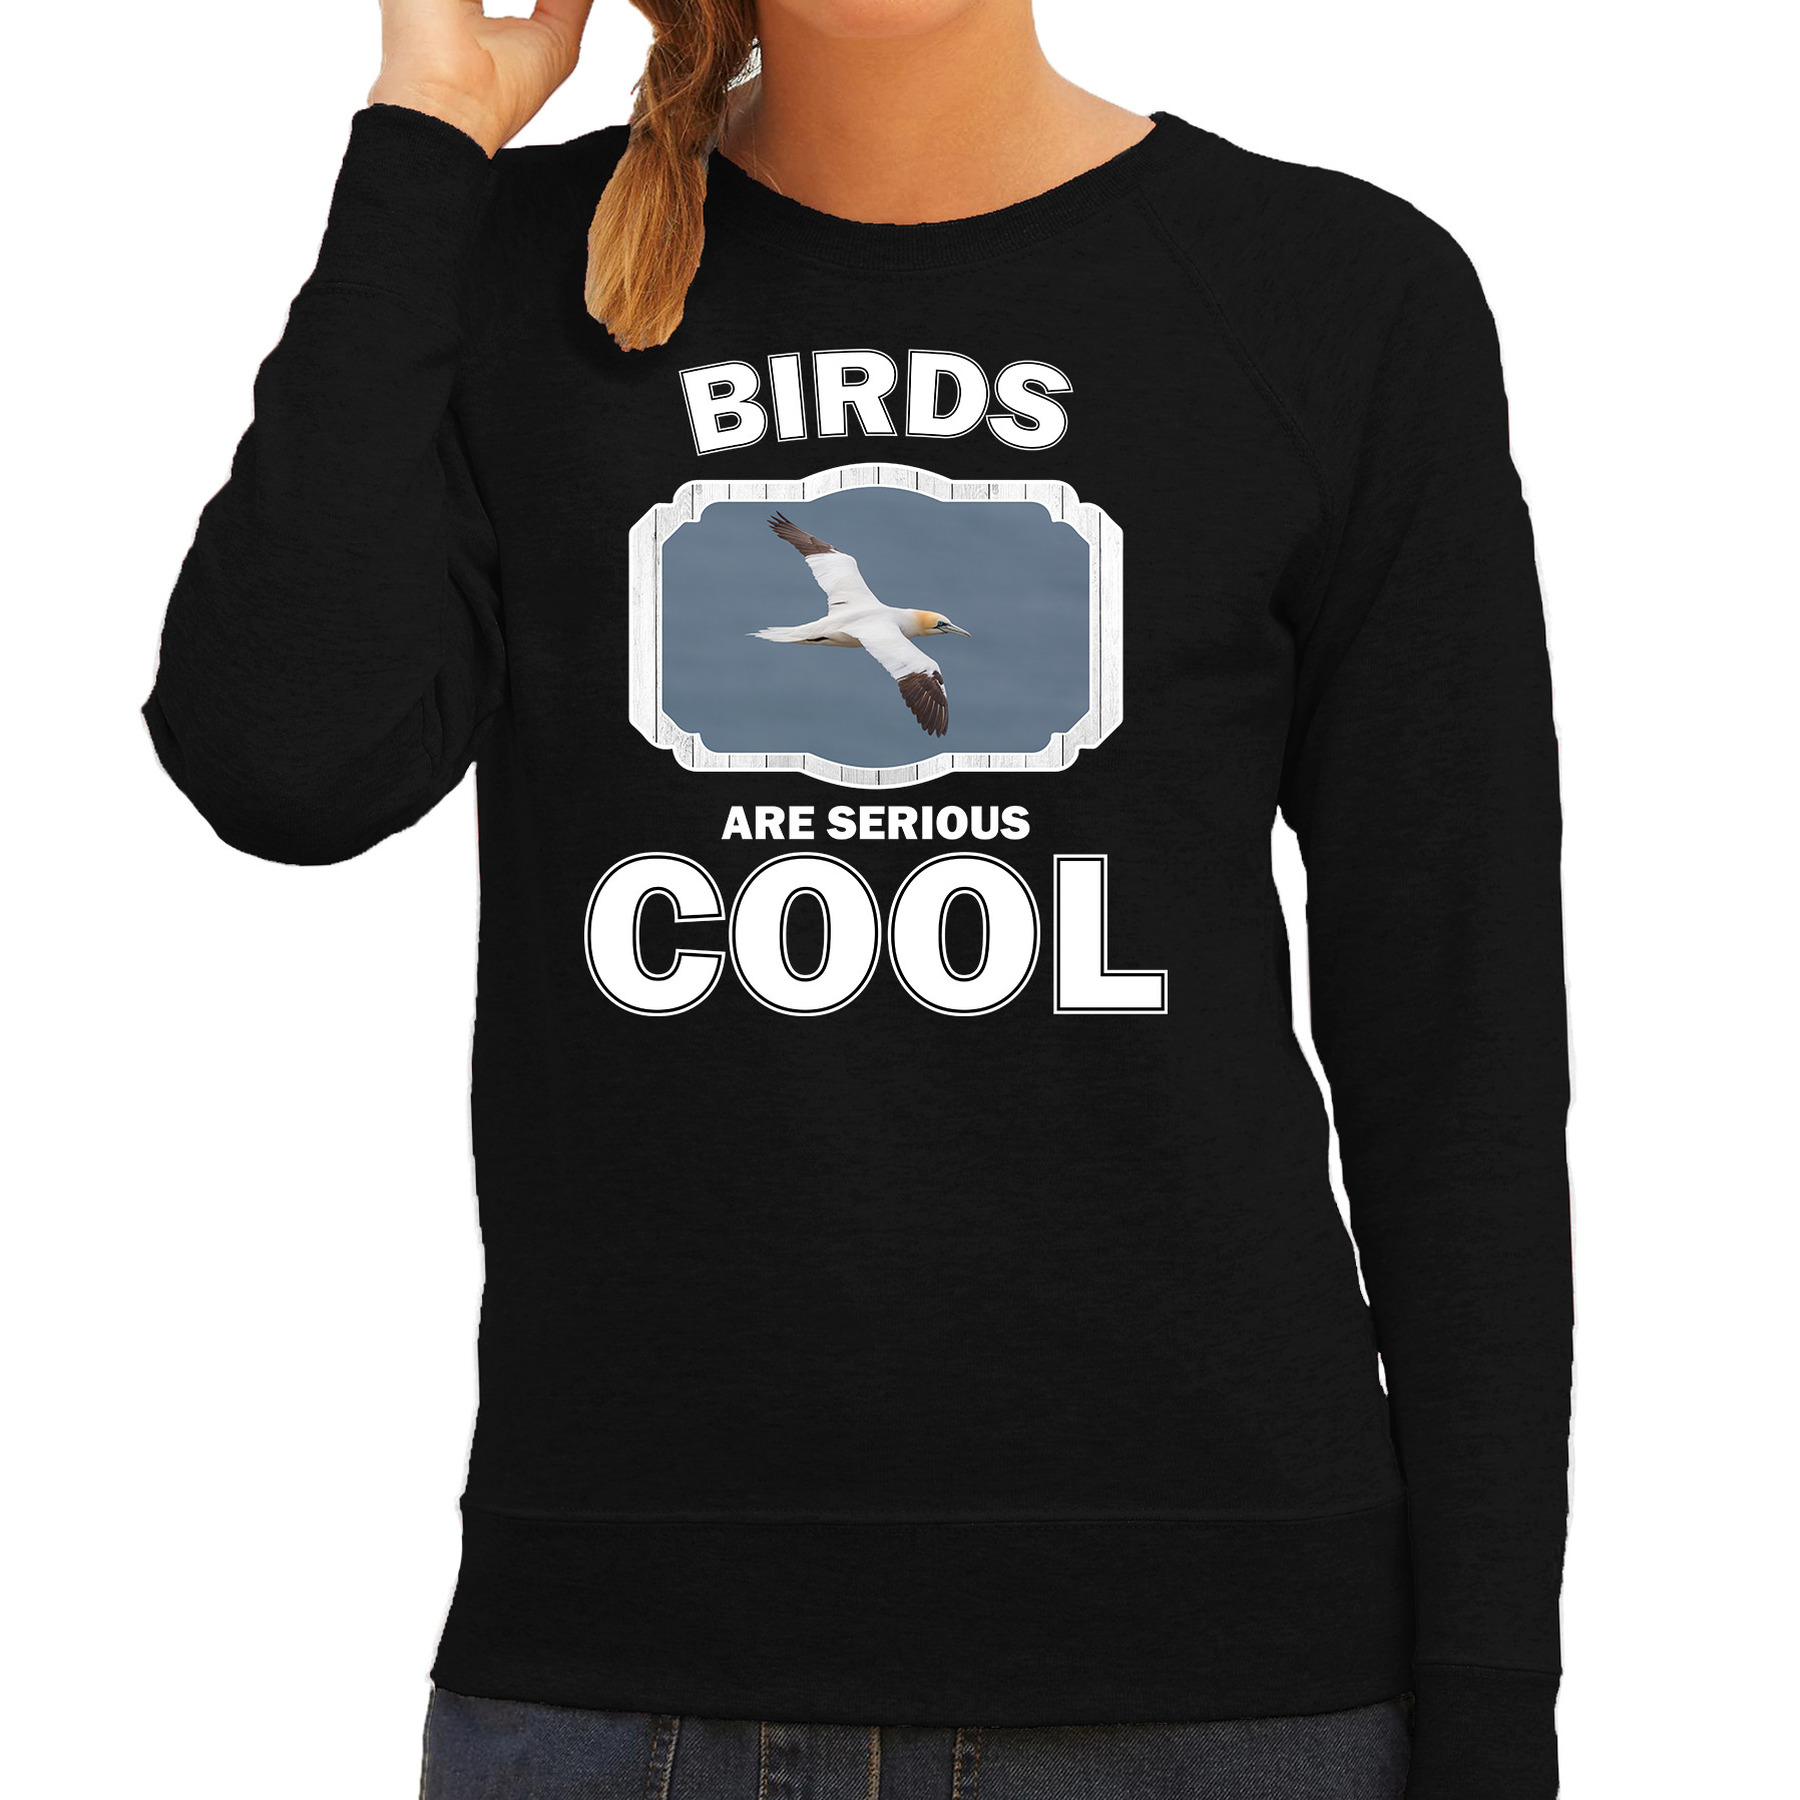 Sweater birds are serious cool zwart dames - vogels/ jan van gent vogel trui